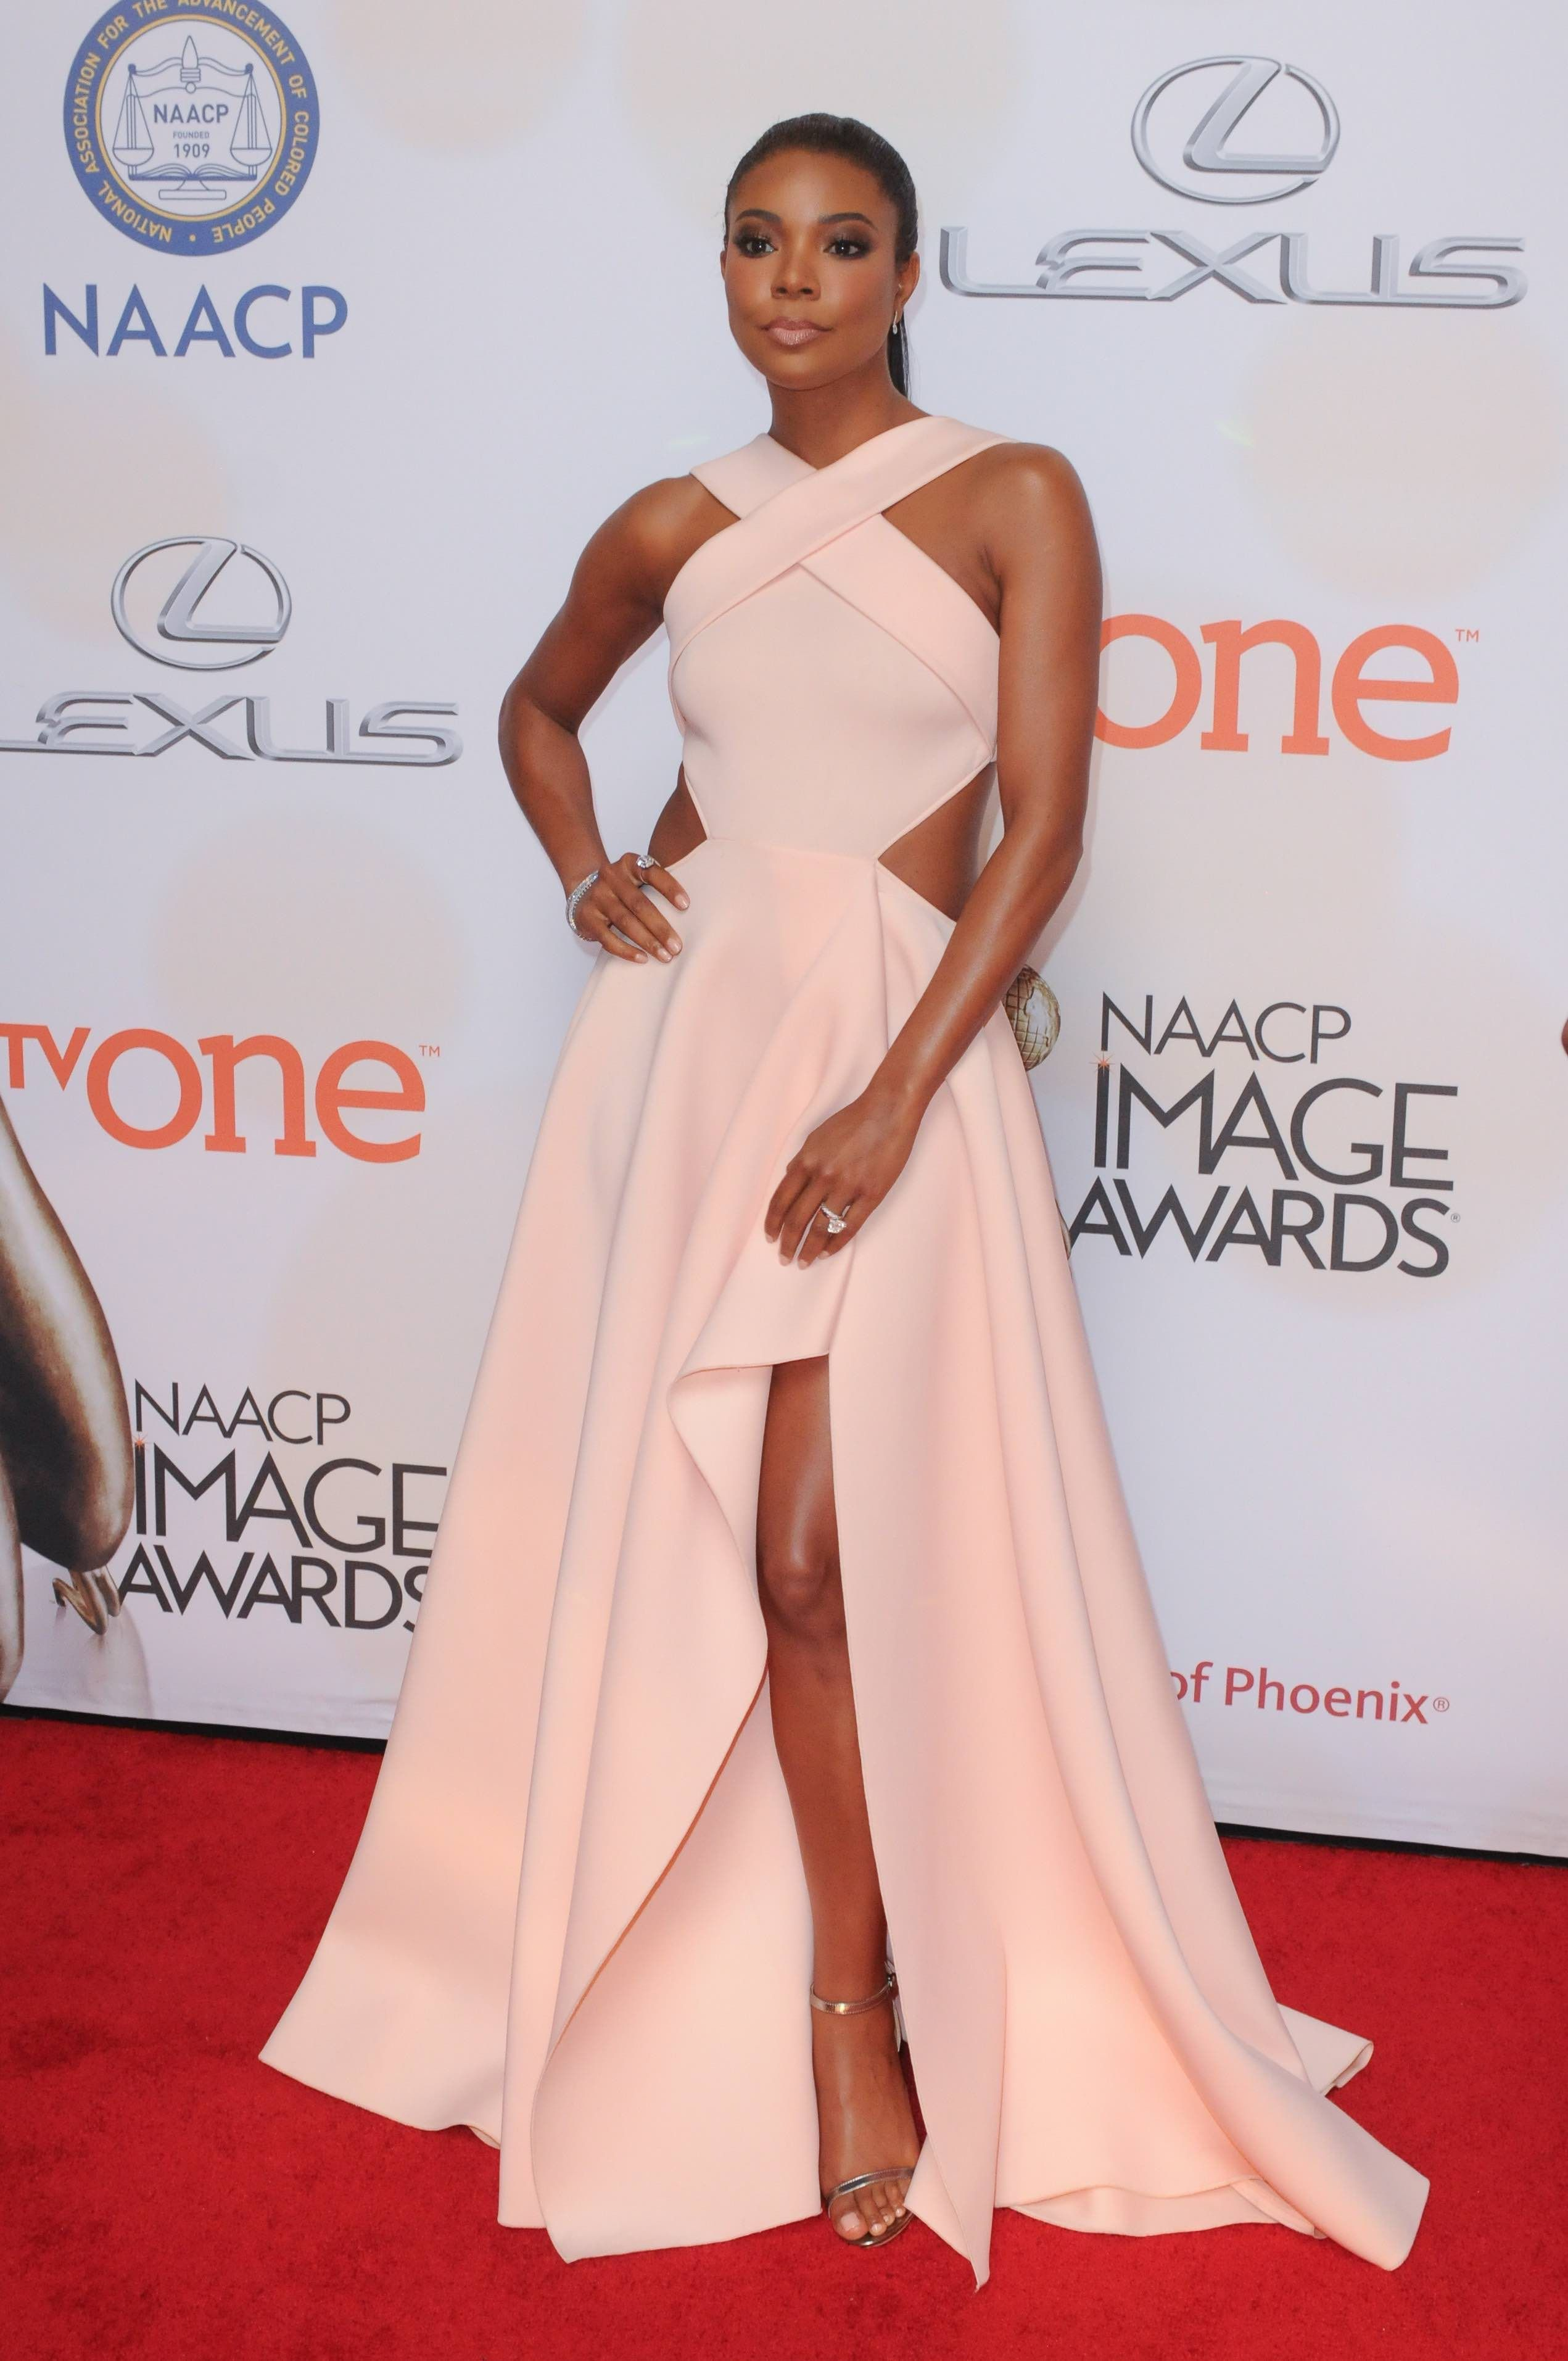 Gabrielle-Union-PF-WENN.jpg (2542×3827) | Dreamboard | Pinterest ...